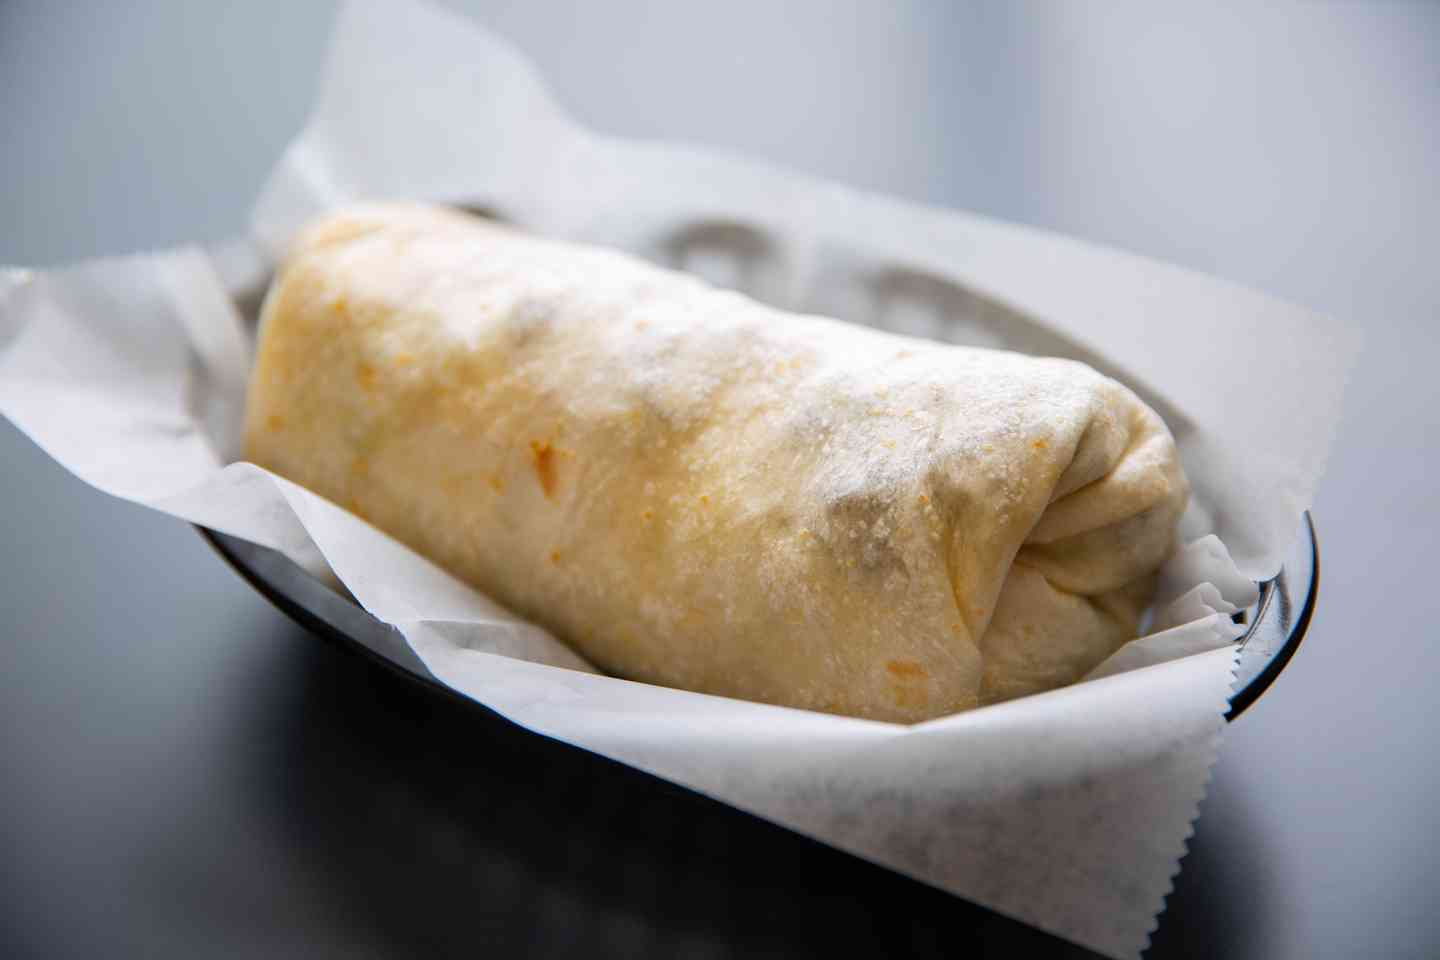 Steak Burrito (Asada)